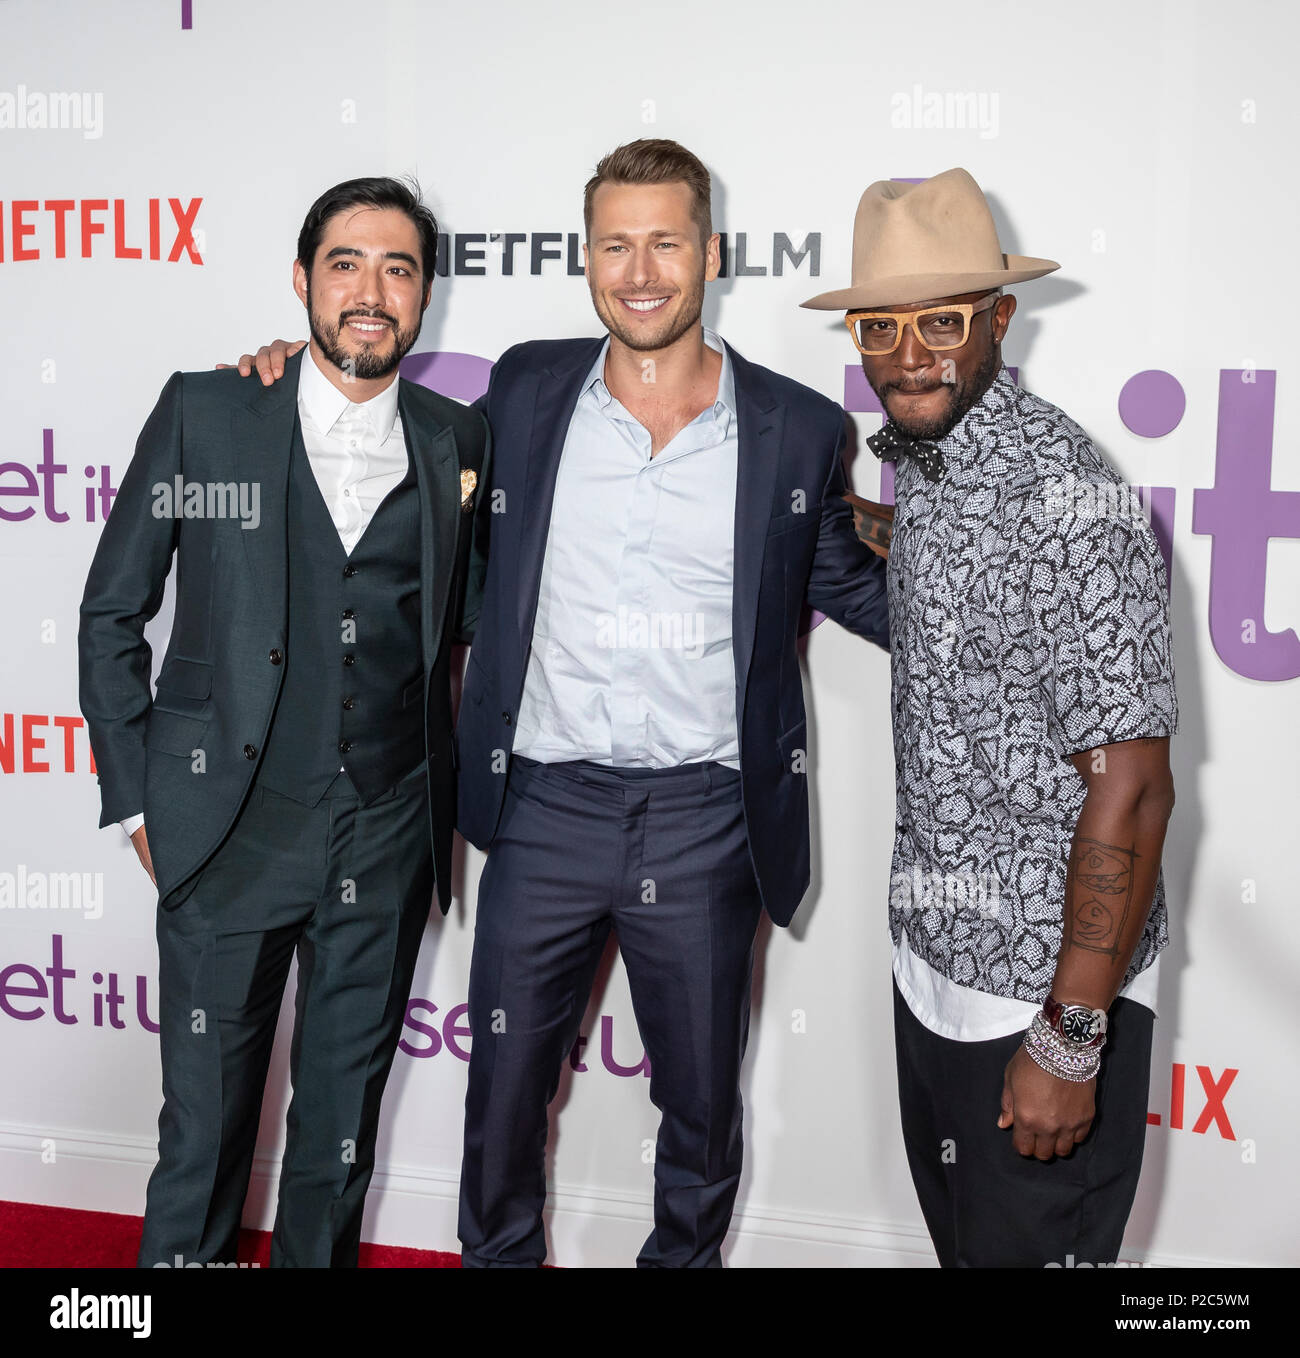 New York, NY, USA - June 12, 2018: Justin Nappi, Glen Powell and Taye Diggs attend the New York special screening of the Netflix film 'Set It Up' at A - Stock Image